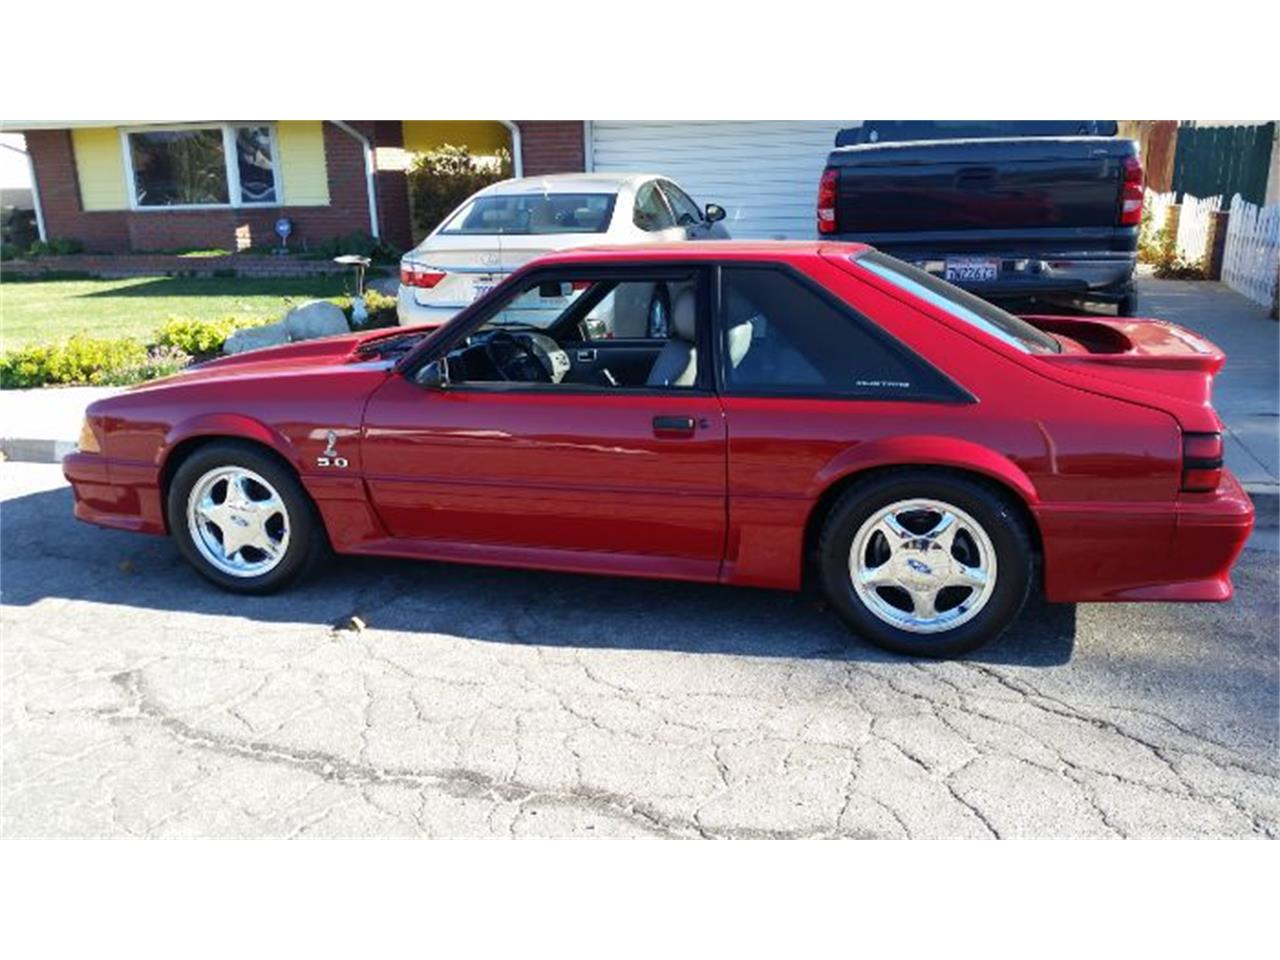 Large picture of 88 mustang obiz